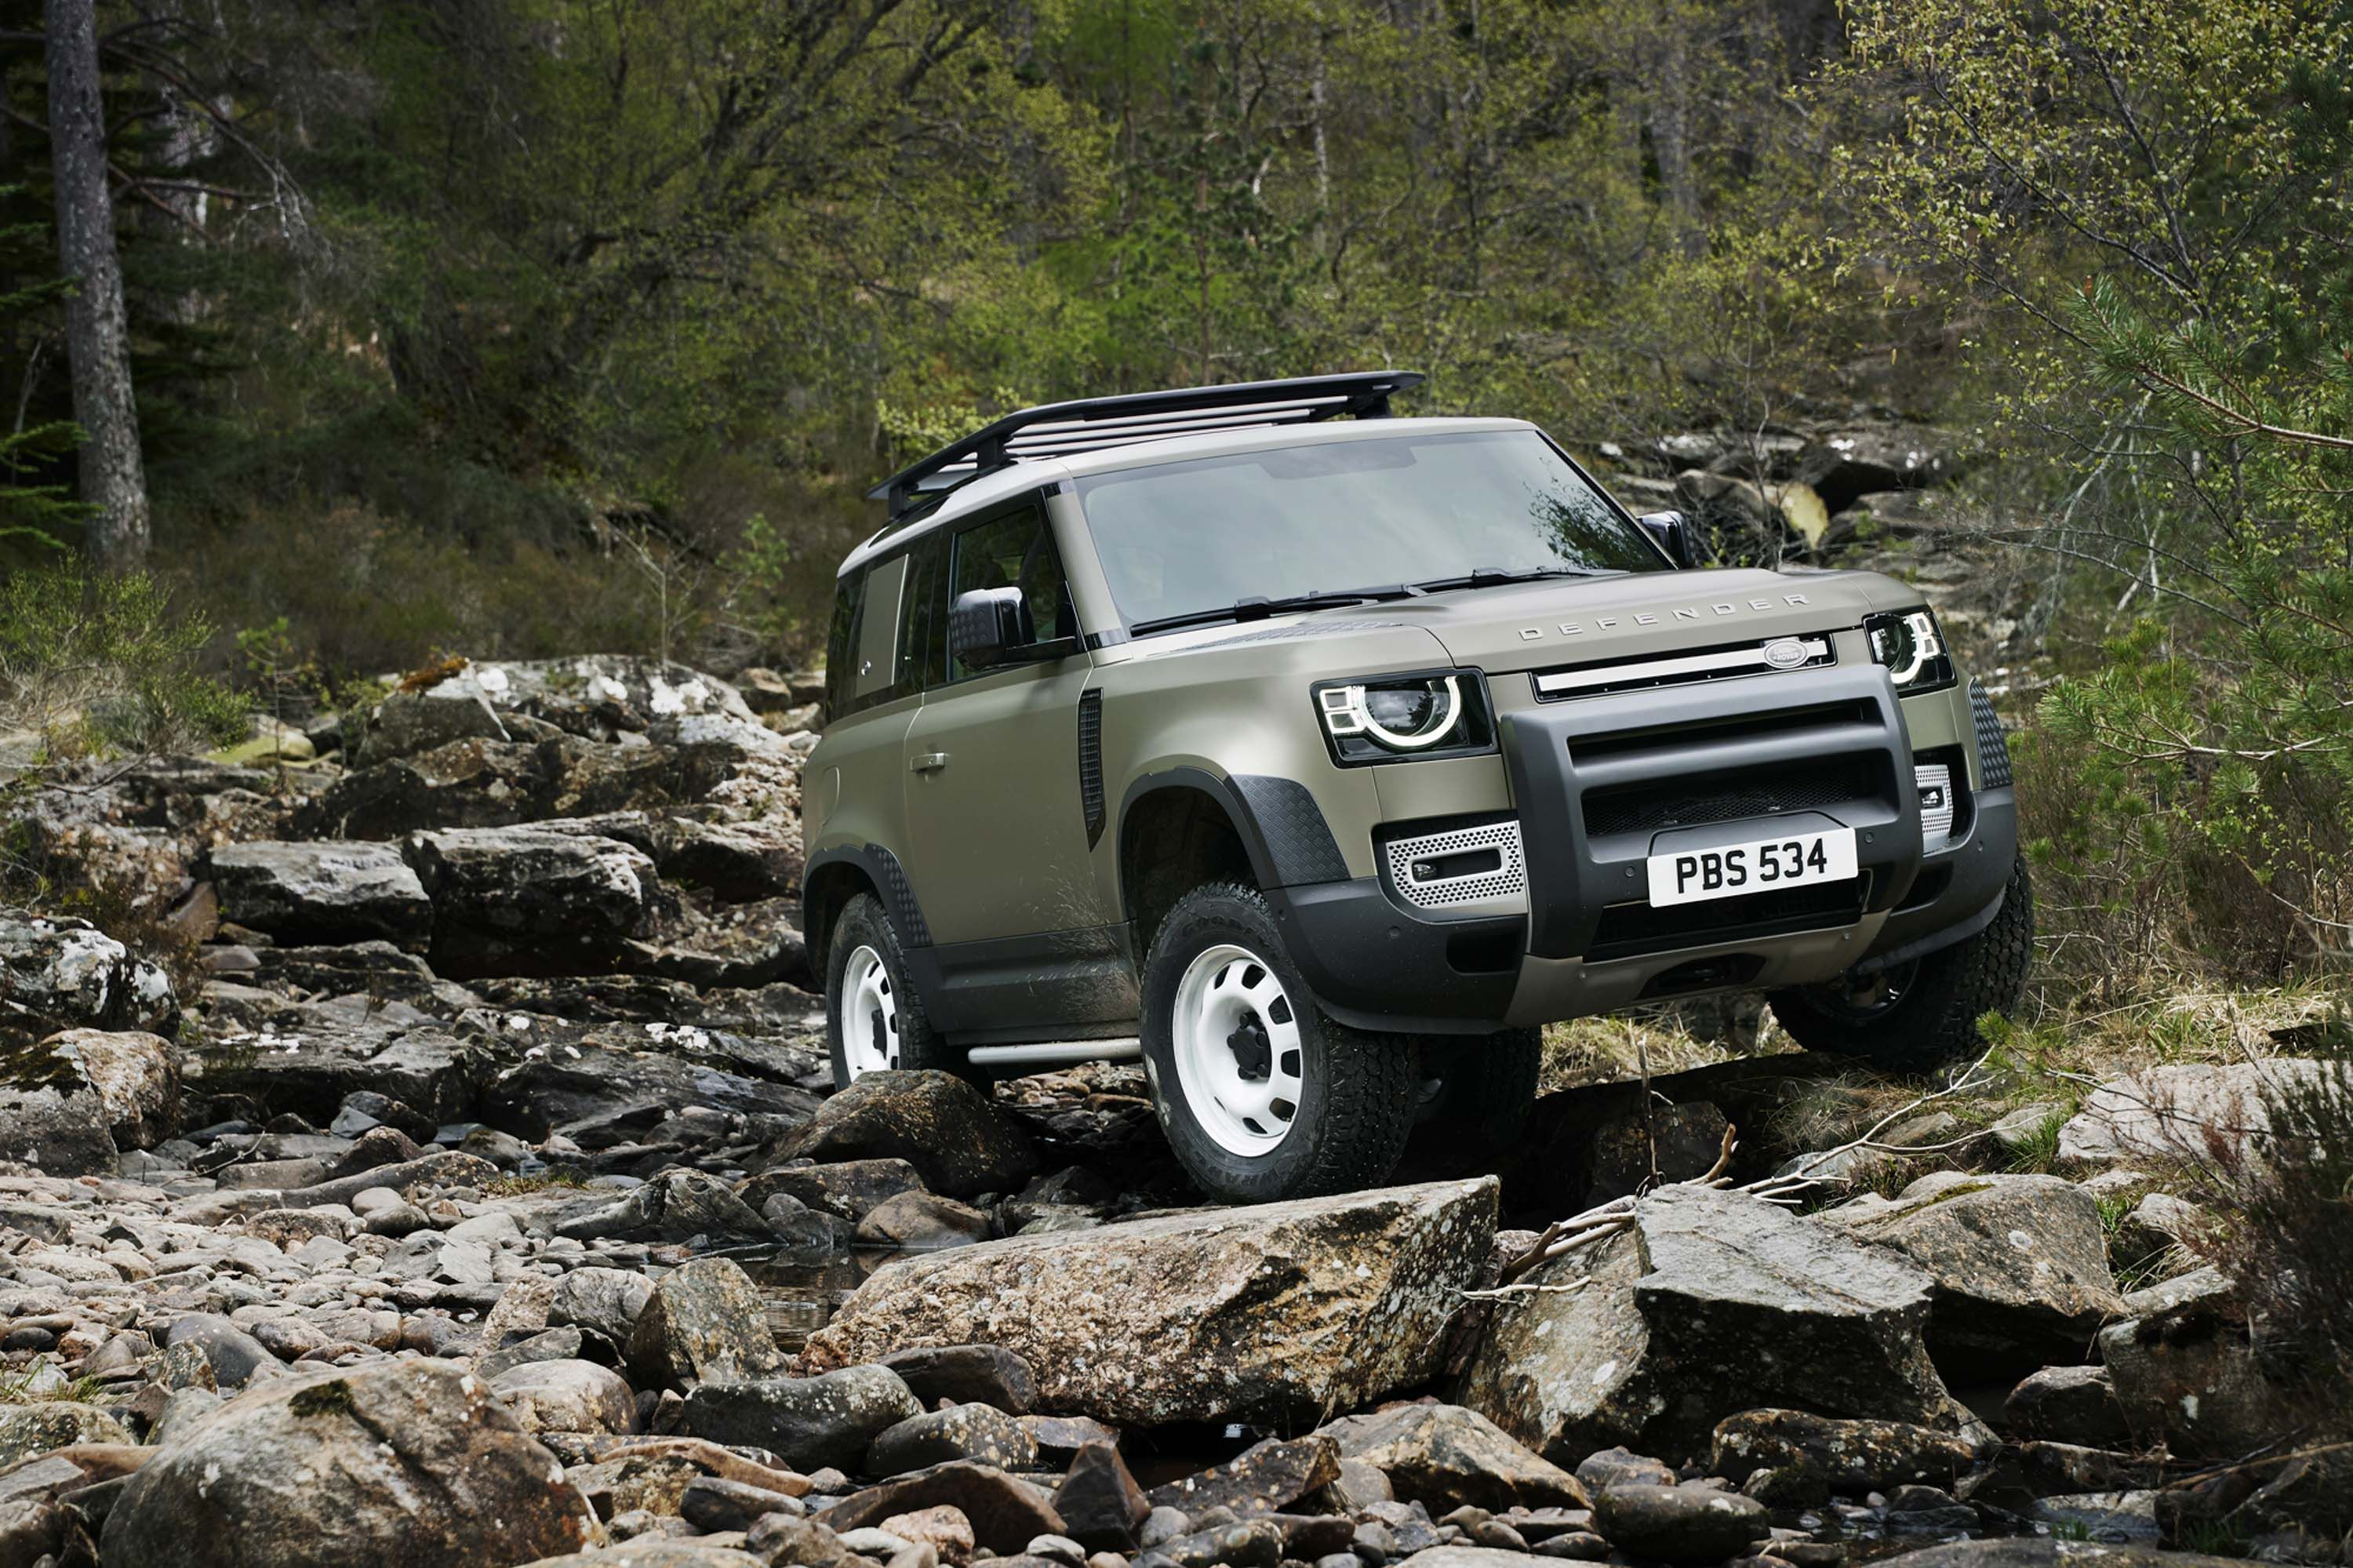 2020 Land Rover Defender Looks A Lot Like The 2011 Land